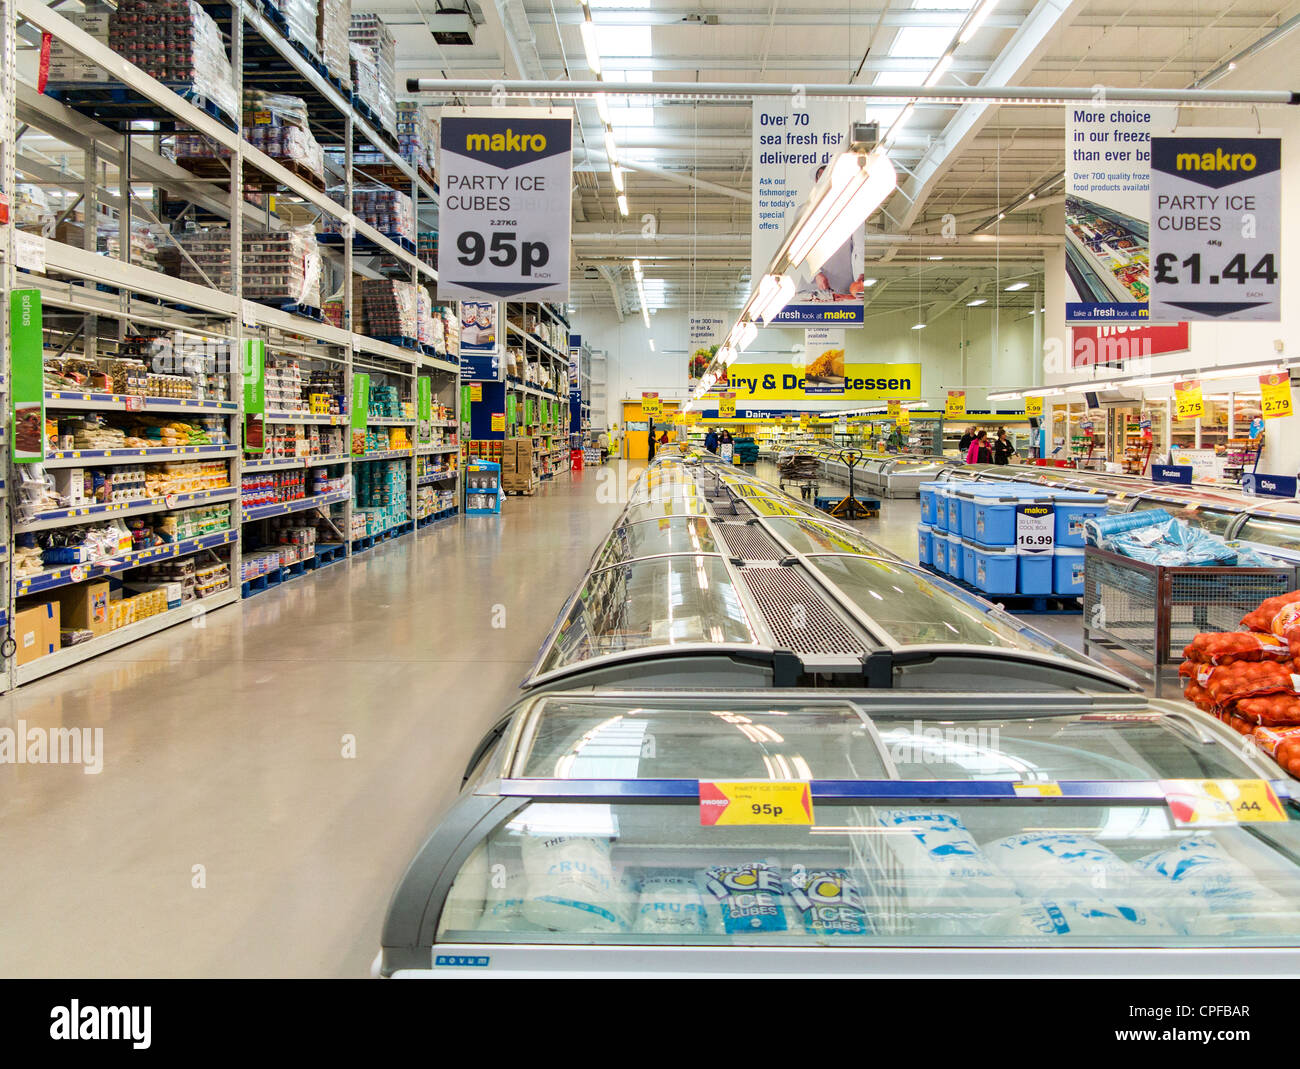 Makro cash and carry warehouse interior selling goods - Stock Image